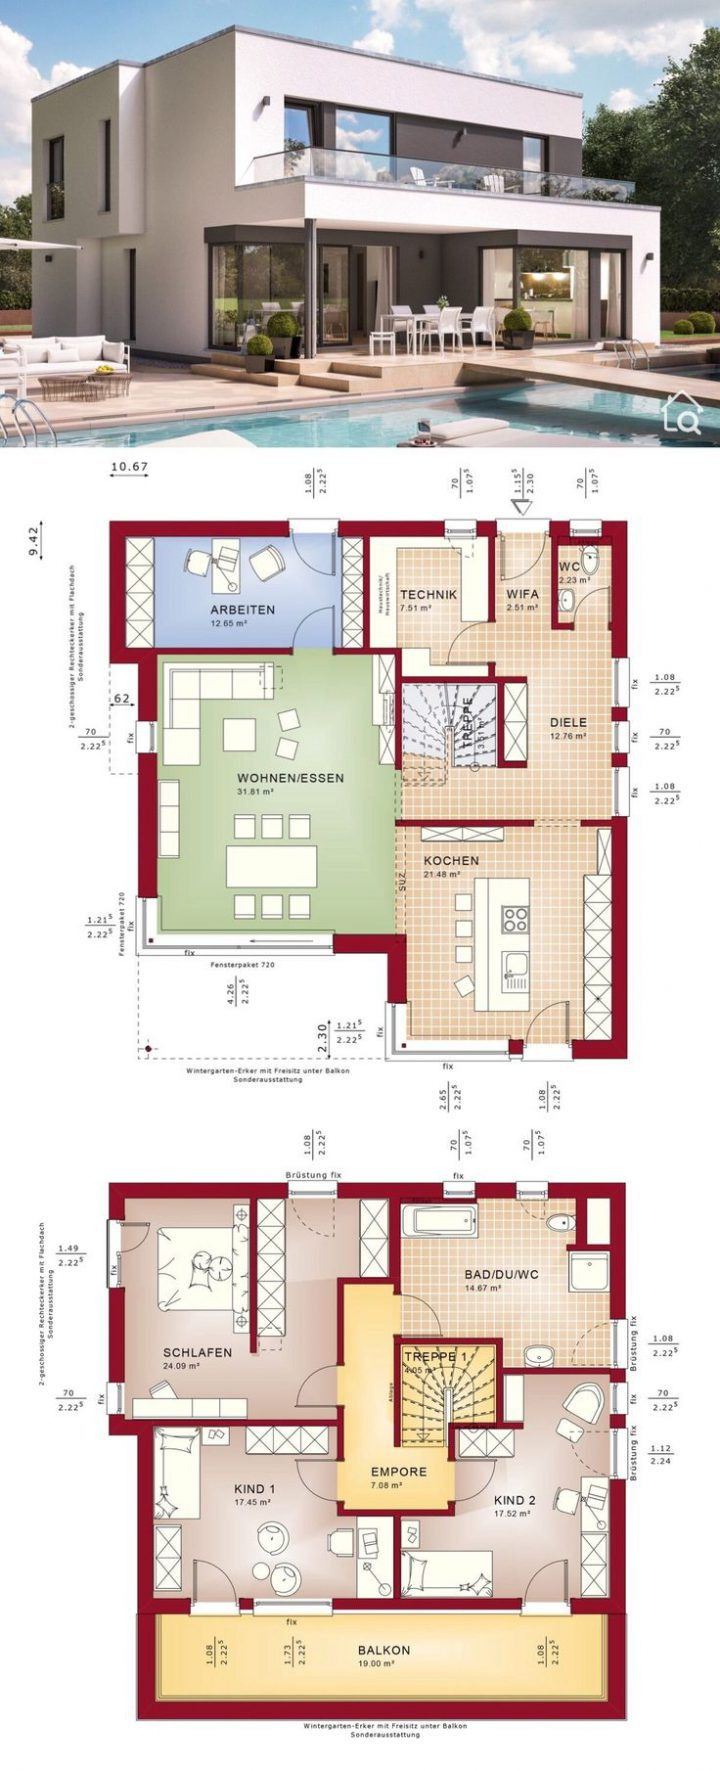 house floor plans small villa with 2 story 4 bedroom open concept modern cont